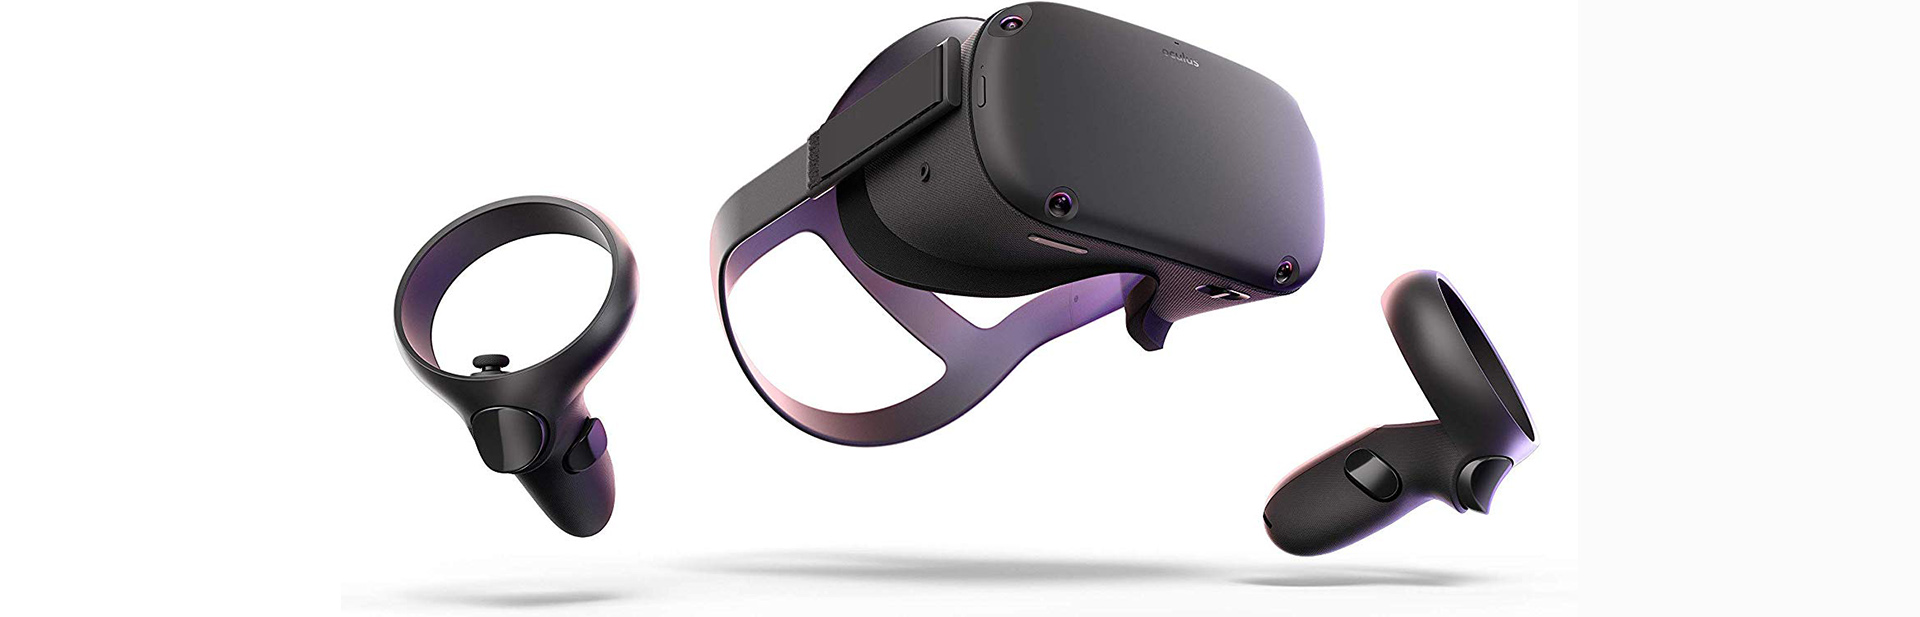 Comparatif des casques vr autonomes professionnels oculus quest